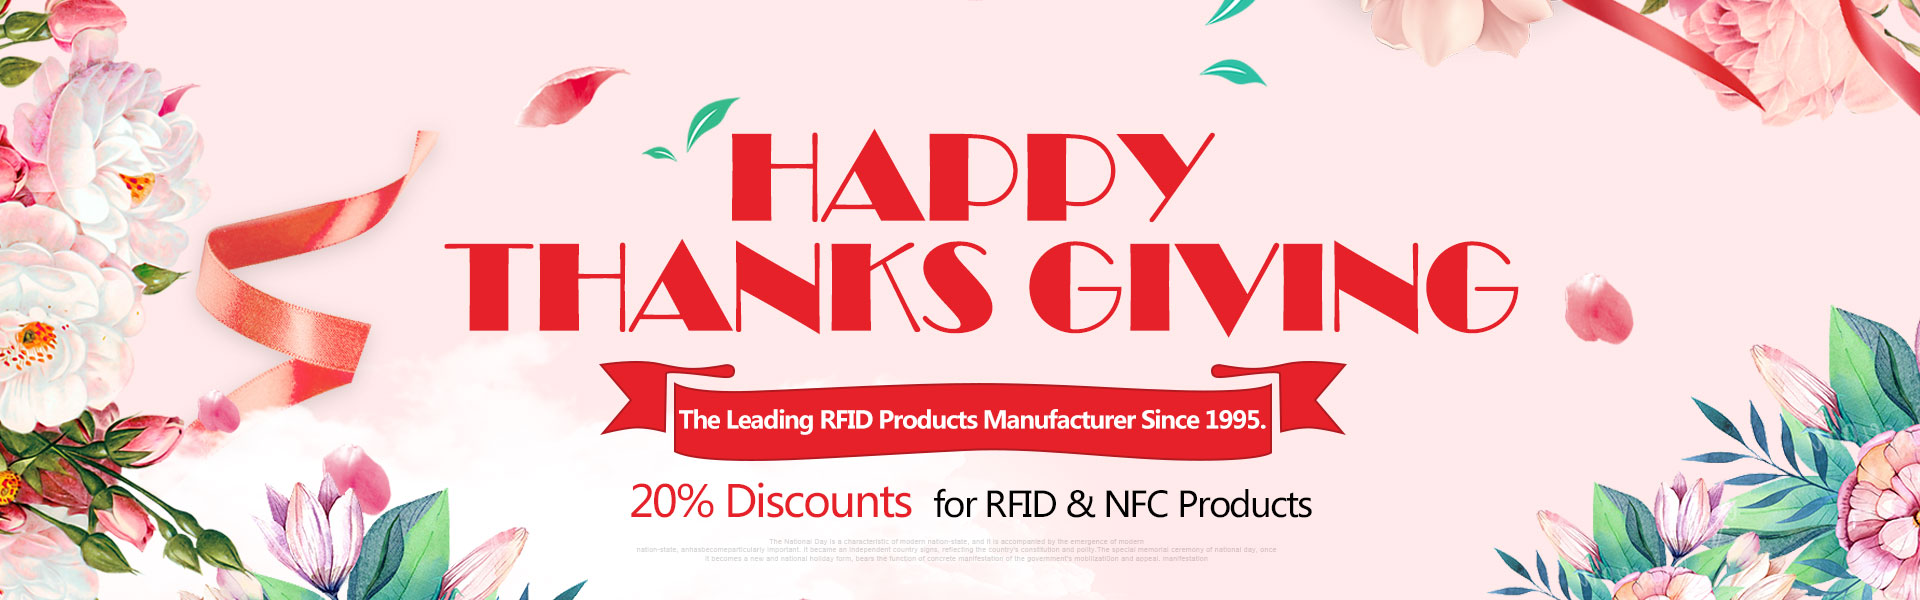 Thanks Giving Day, 20% Discount for RFID and NFC Products